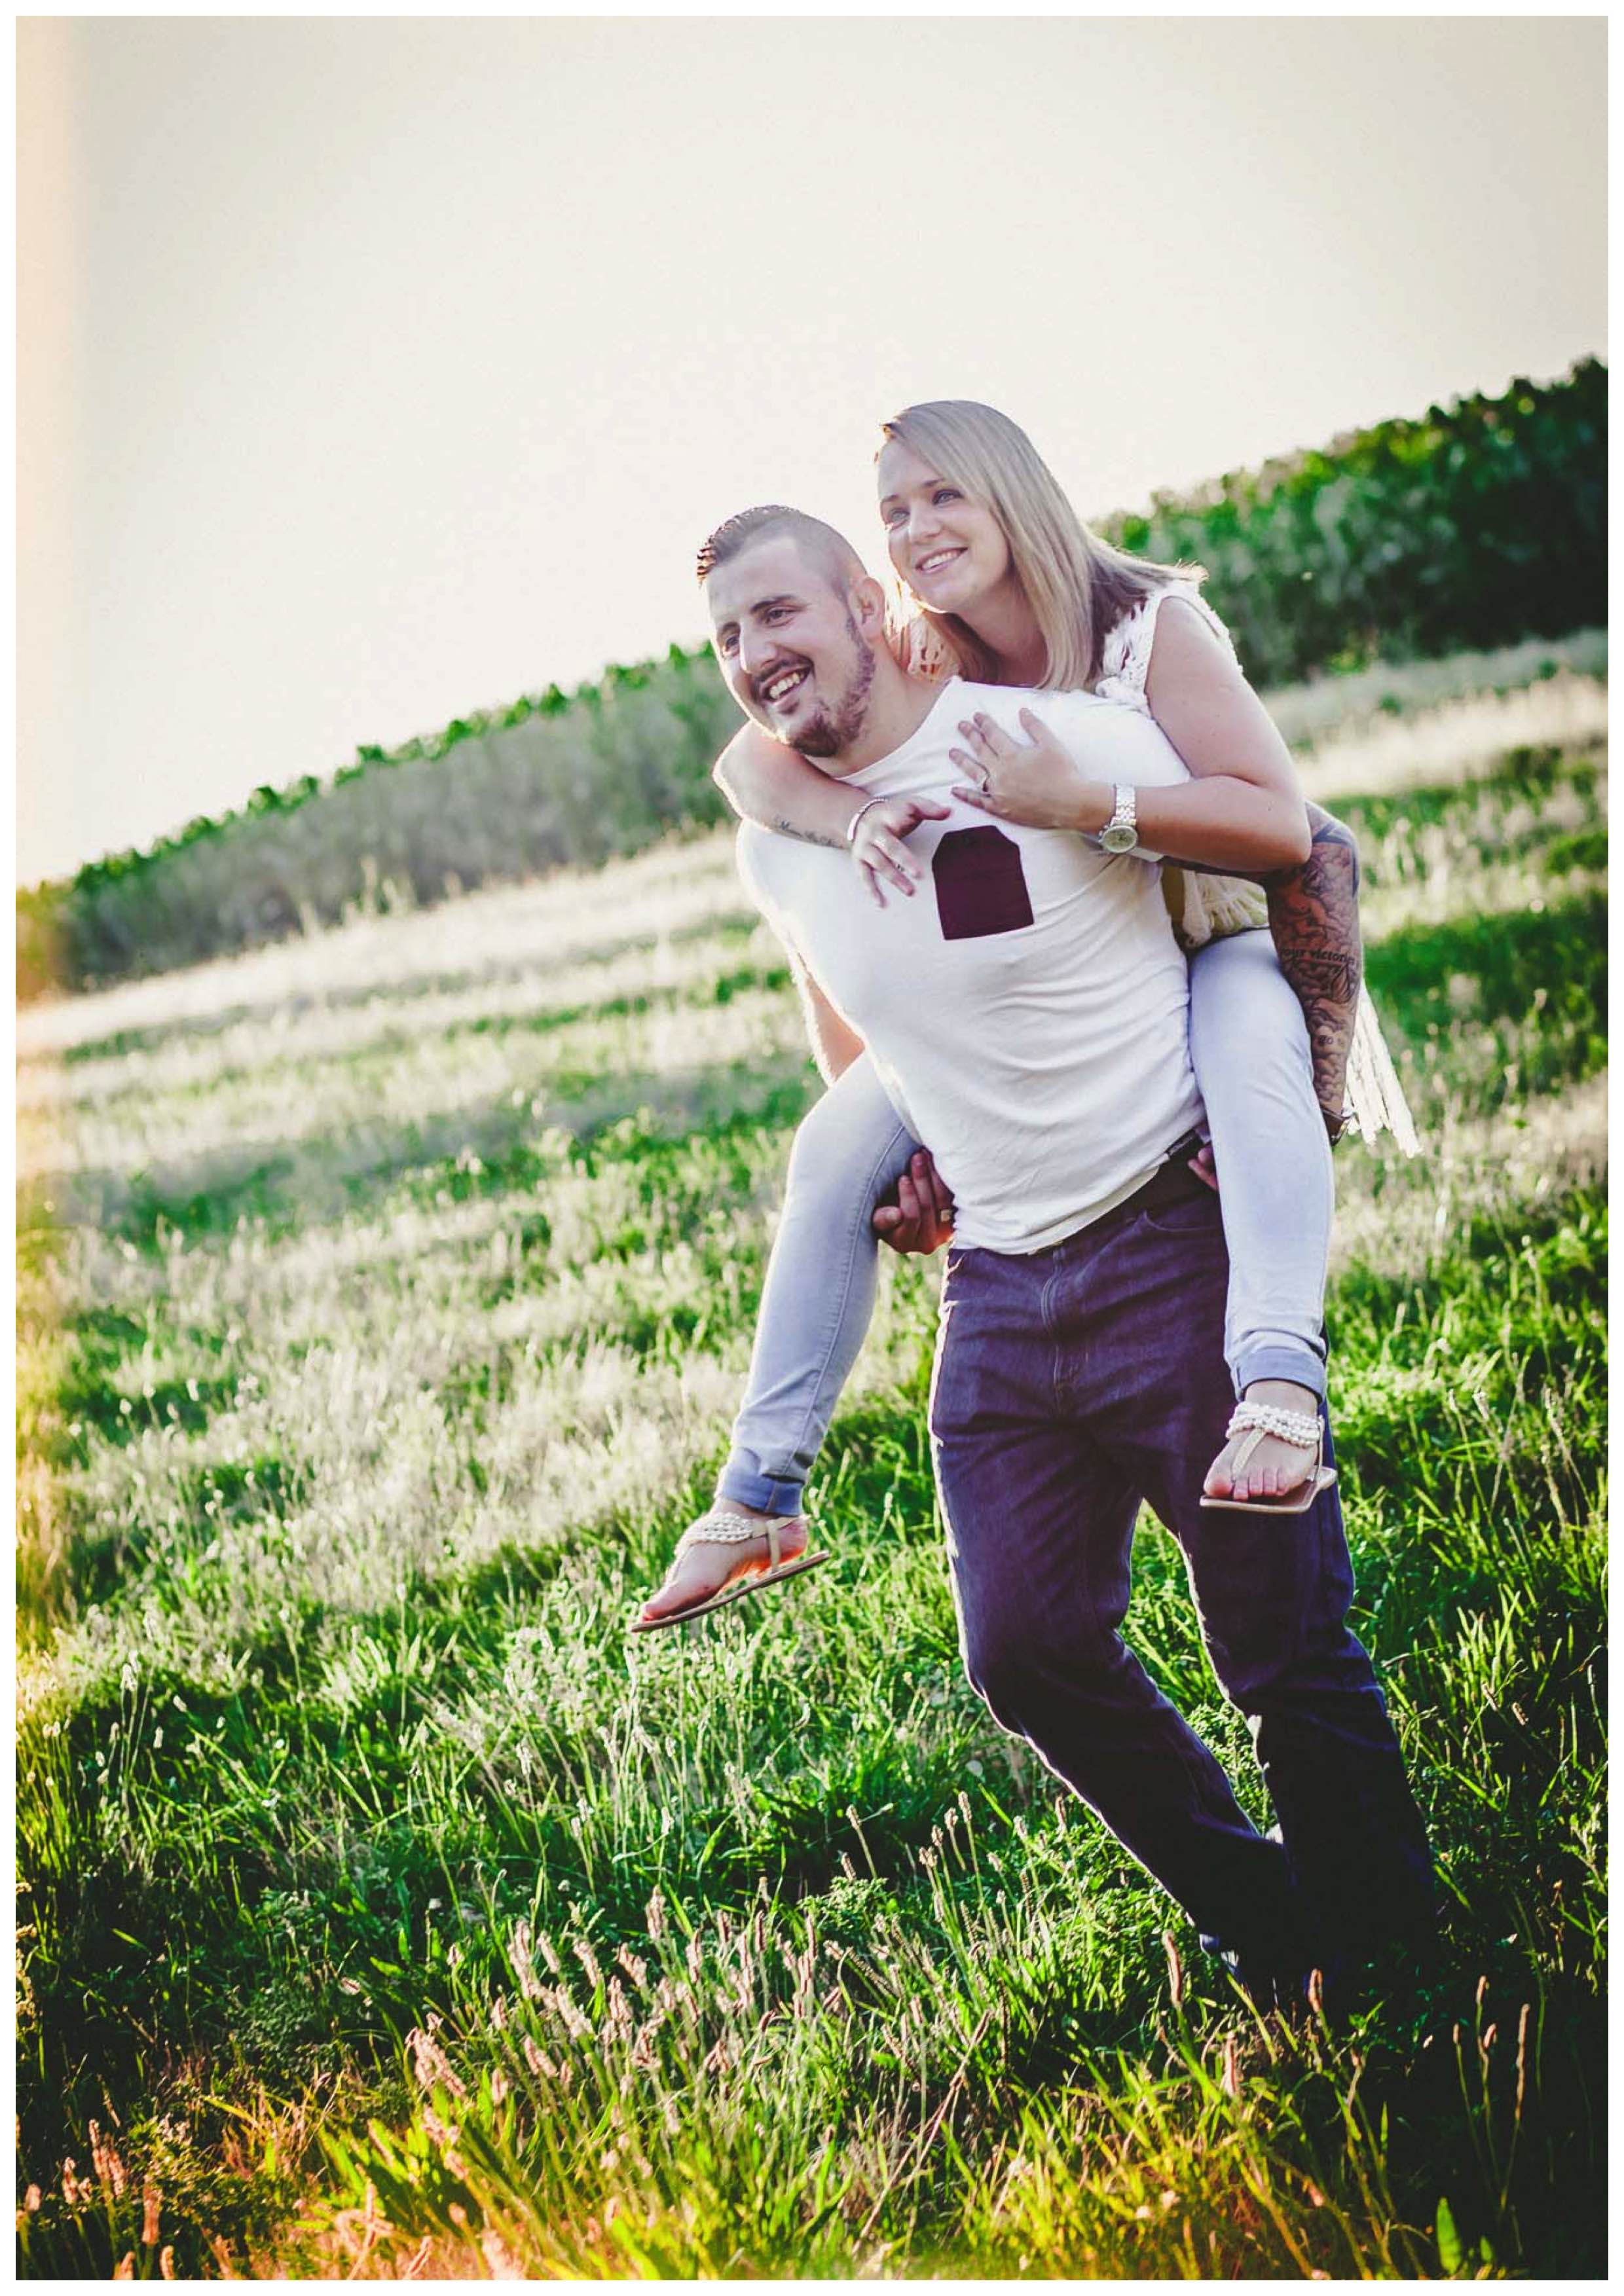 Amanda Lewi Engagement Shoot 6